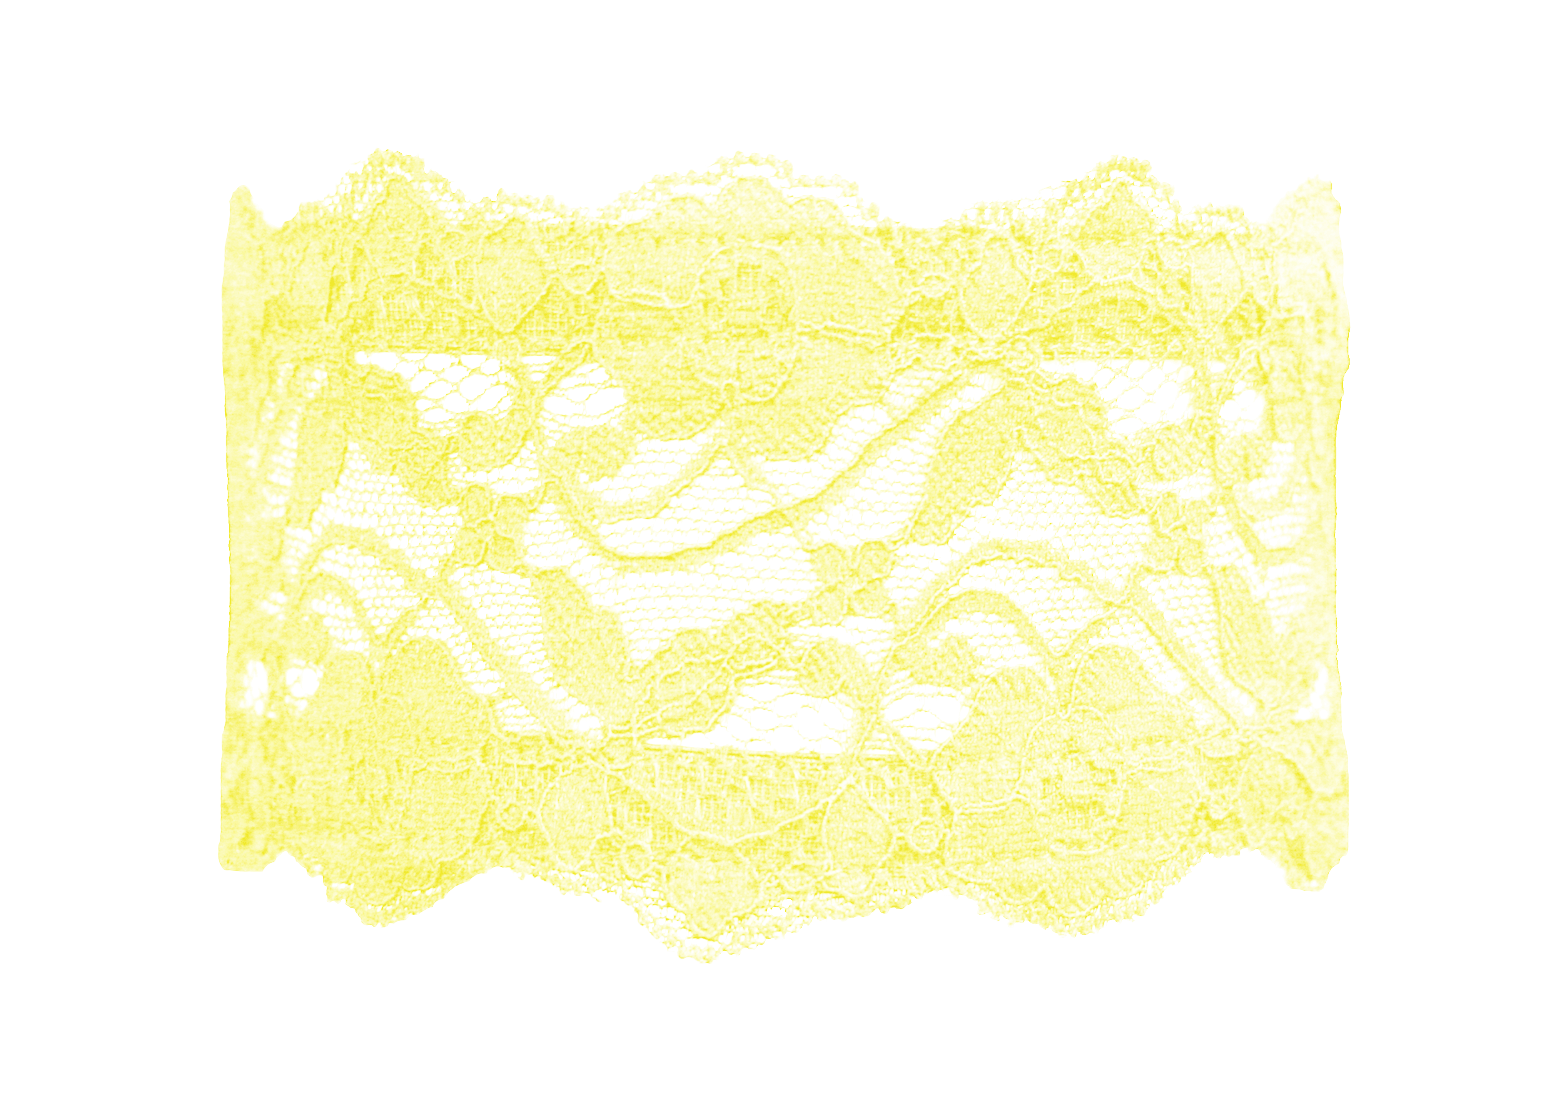 iThigh-yellow.png